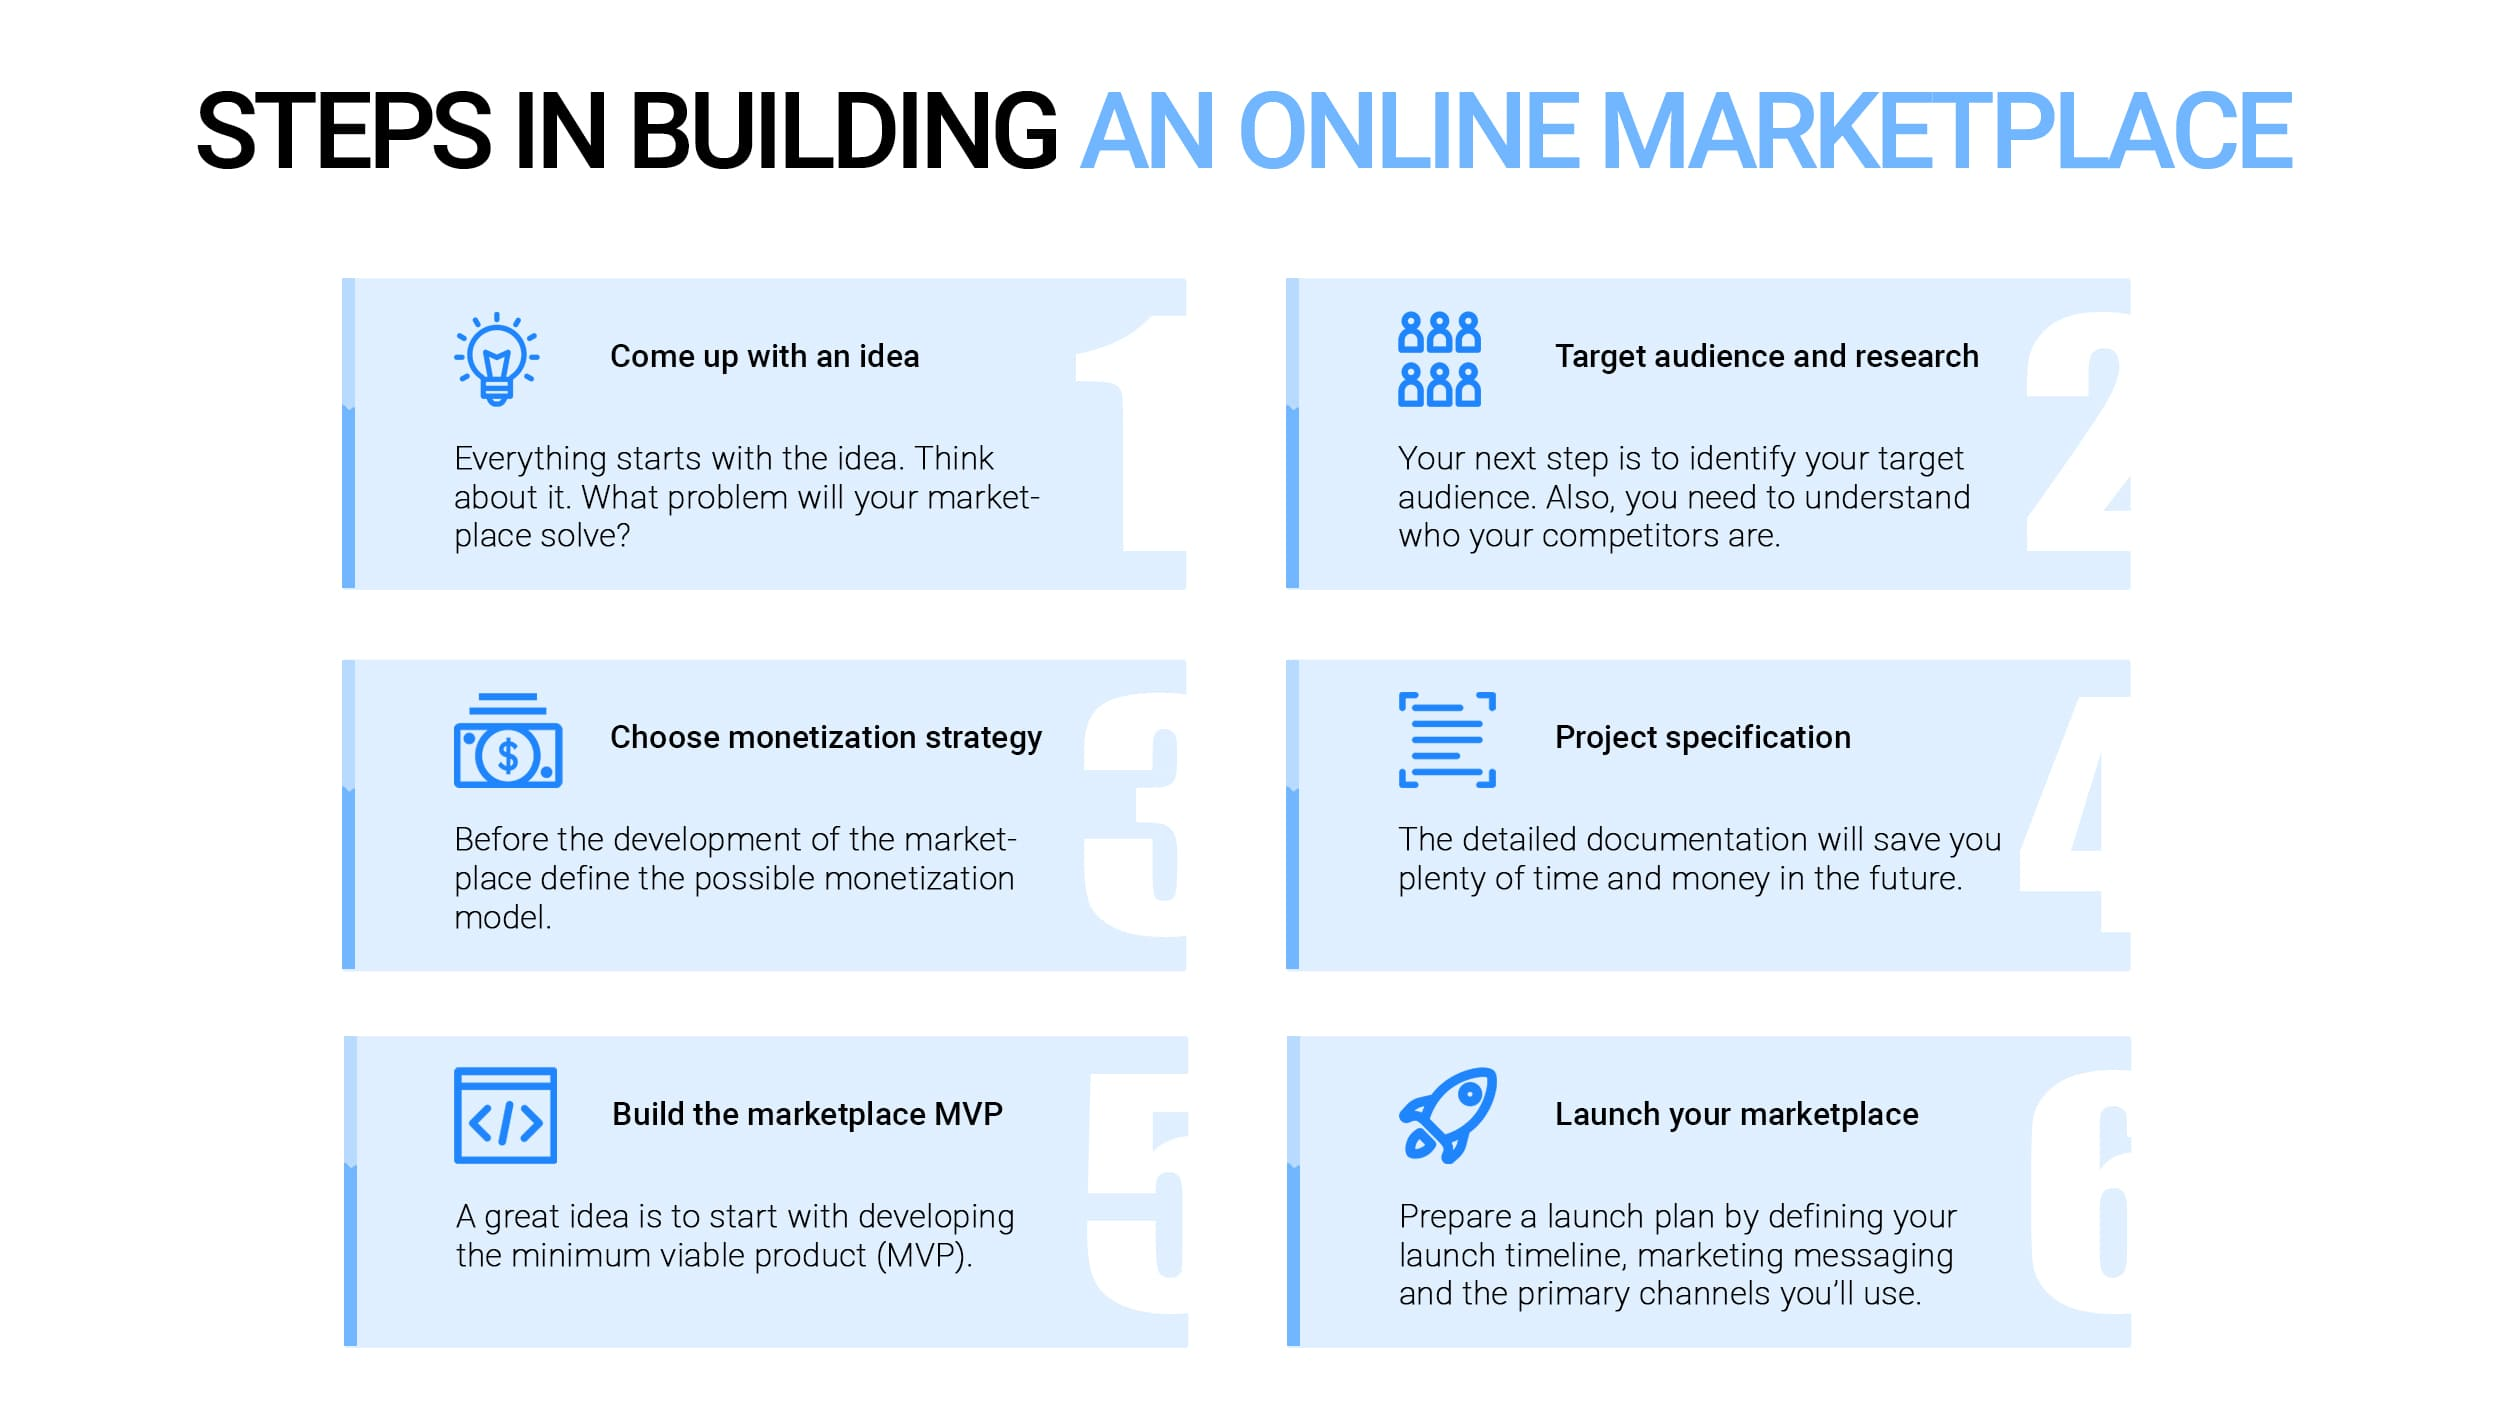 Steps in building an online marketplace